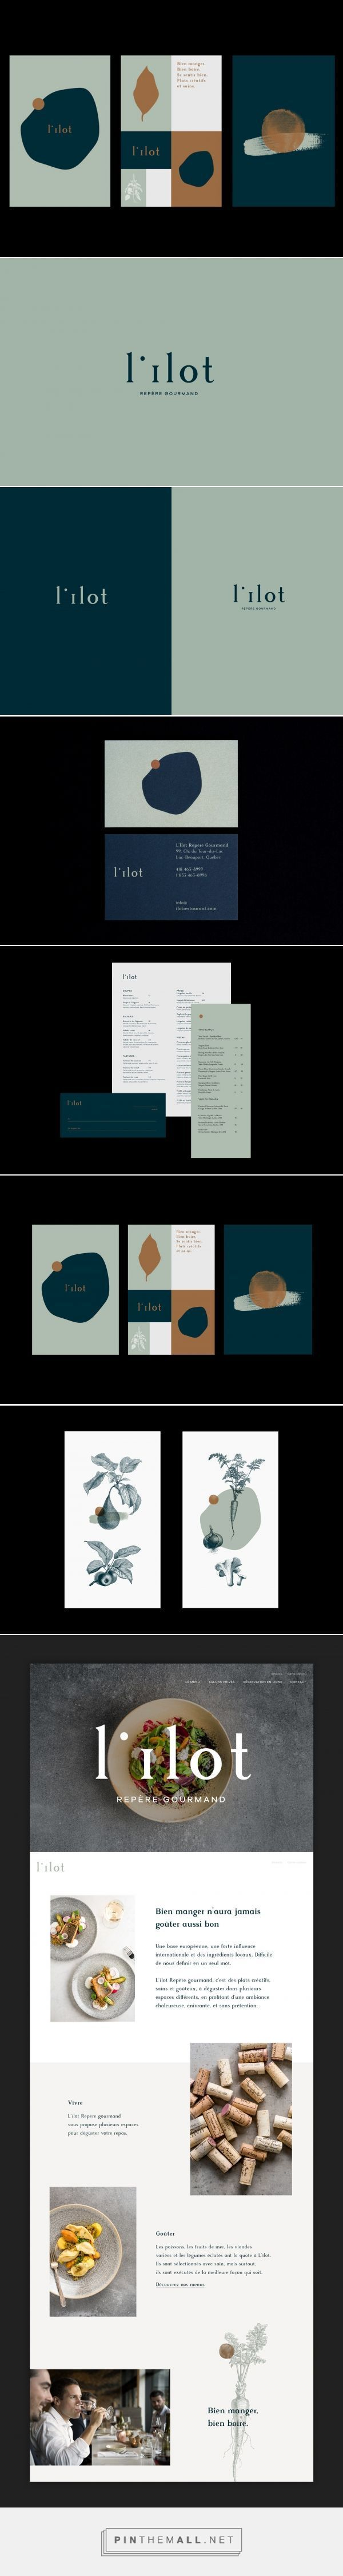 Branding board and complete brand identity for a modern and arty brand that is colorful, yet minimalist. Blue and mint green combined to a color palette that looks professional and functional with a playful touch that continues on the logo design and typography used. #logodesign #typography #modern #minimalist #branding #branddesign #visualidentity #brandingboard #artsy #colorful #blue #green #stationery